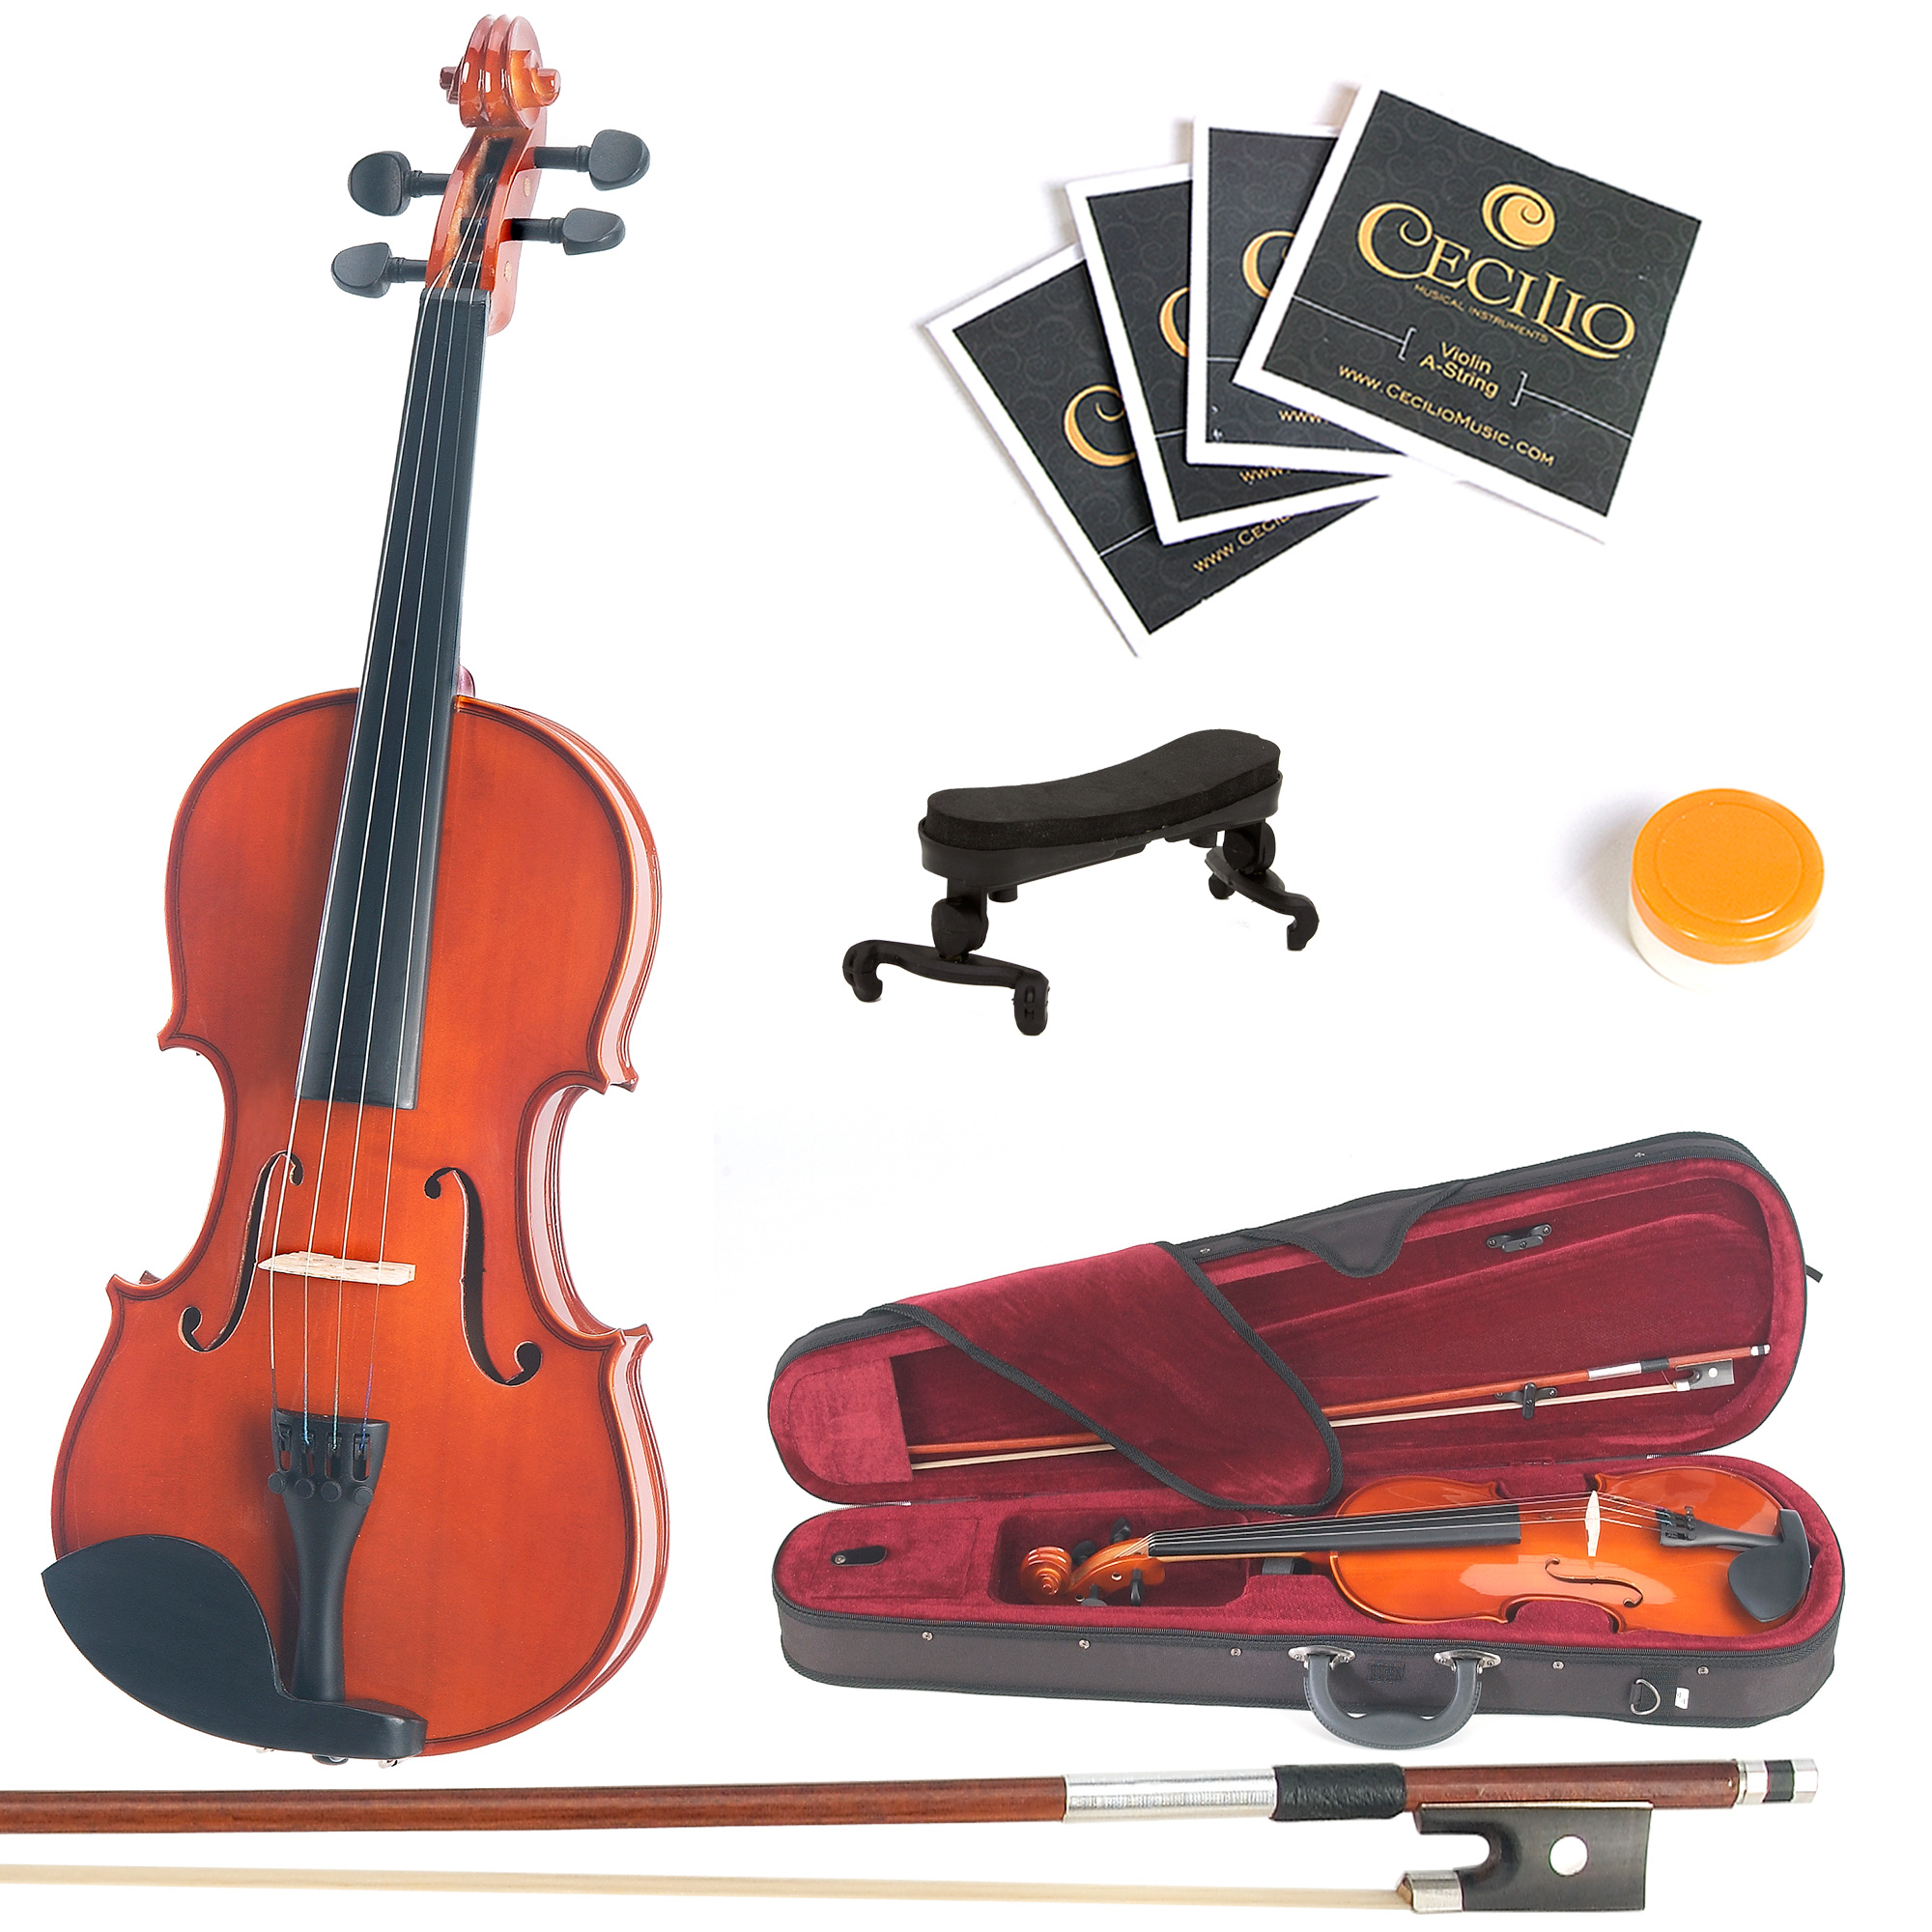 Mendini by Cecilio Size 3/4 MV200 Handcrafted Solid Wood Violin Pack with 1 Year Warranty, Shoulder Rest, Bow, Rosin, Extra Set Strings, 2 Bridges & Case, Natural Varnish